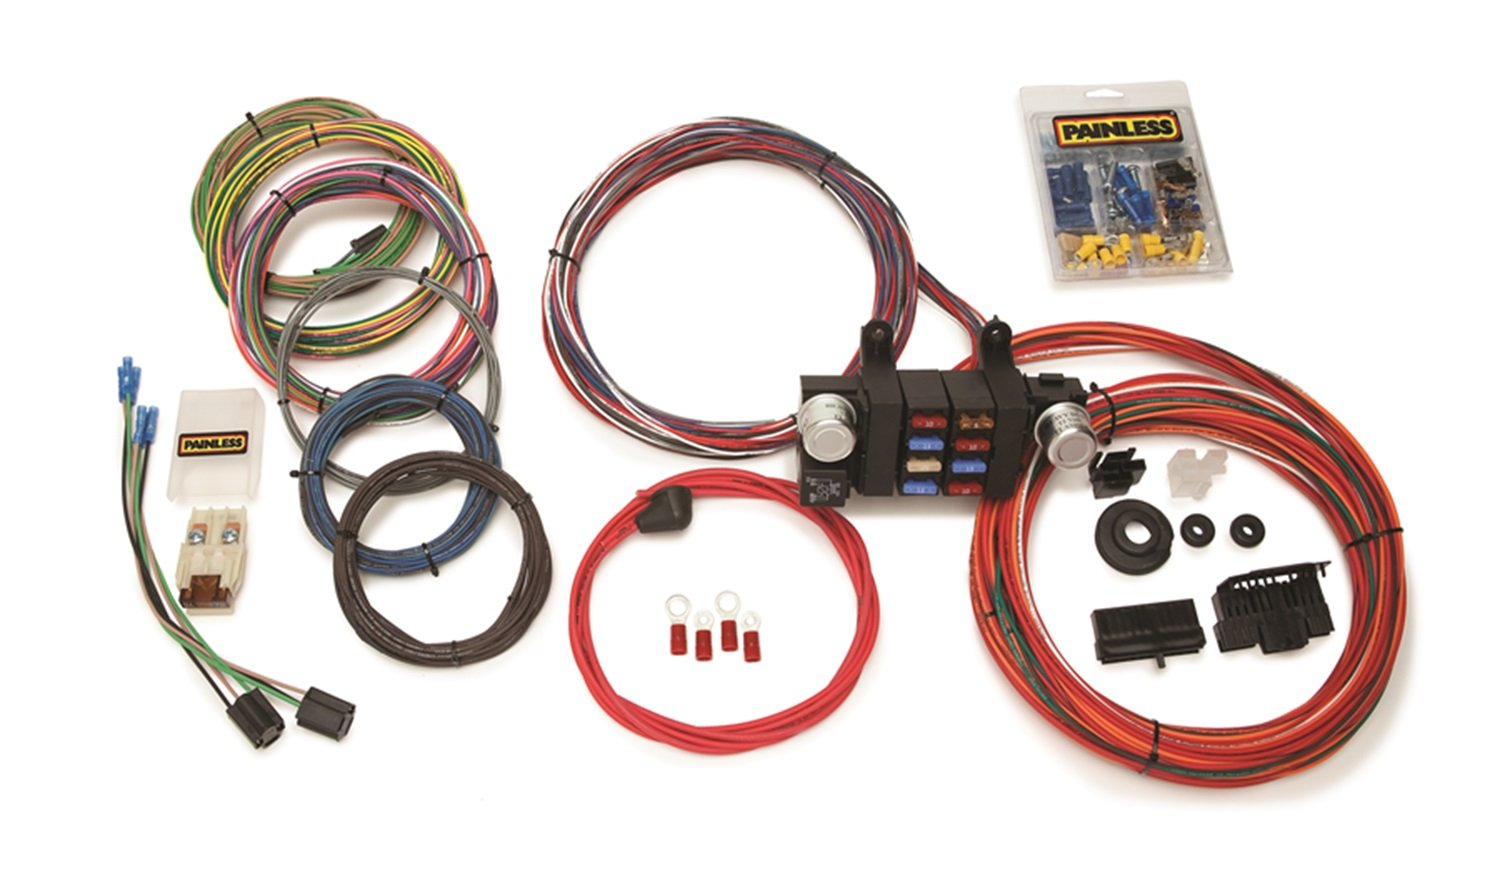 714FypRjpJL._SL1500_ amazon com painless wiring 10308 8 circuit mod t bucket h automotive wiring harness at reclaimingppi.co